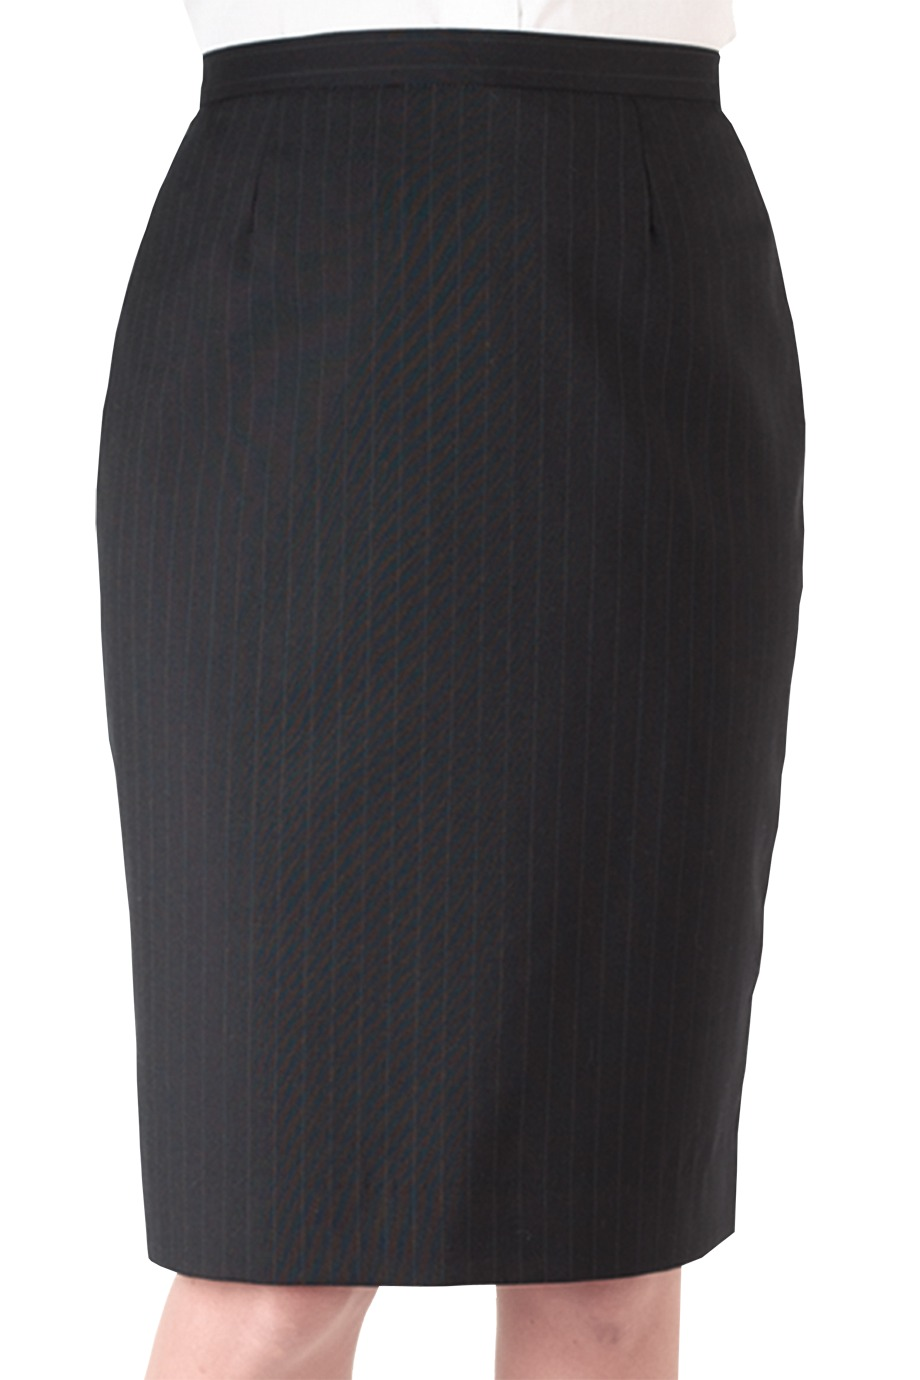 Edwards Garment 9769 - Women's Pinstripe Skirt